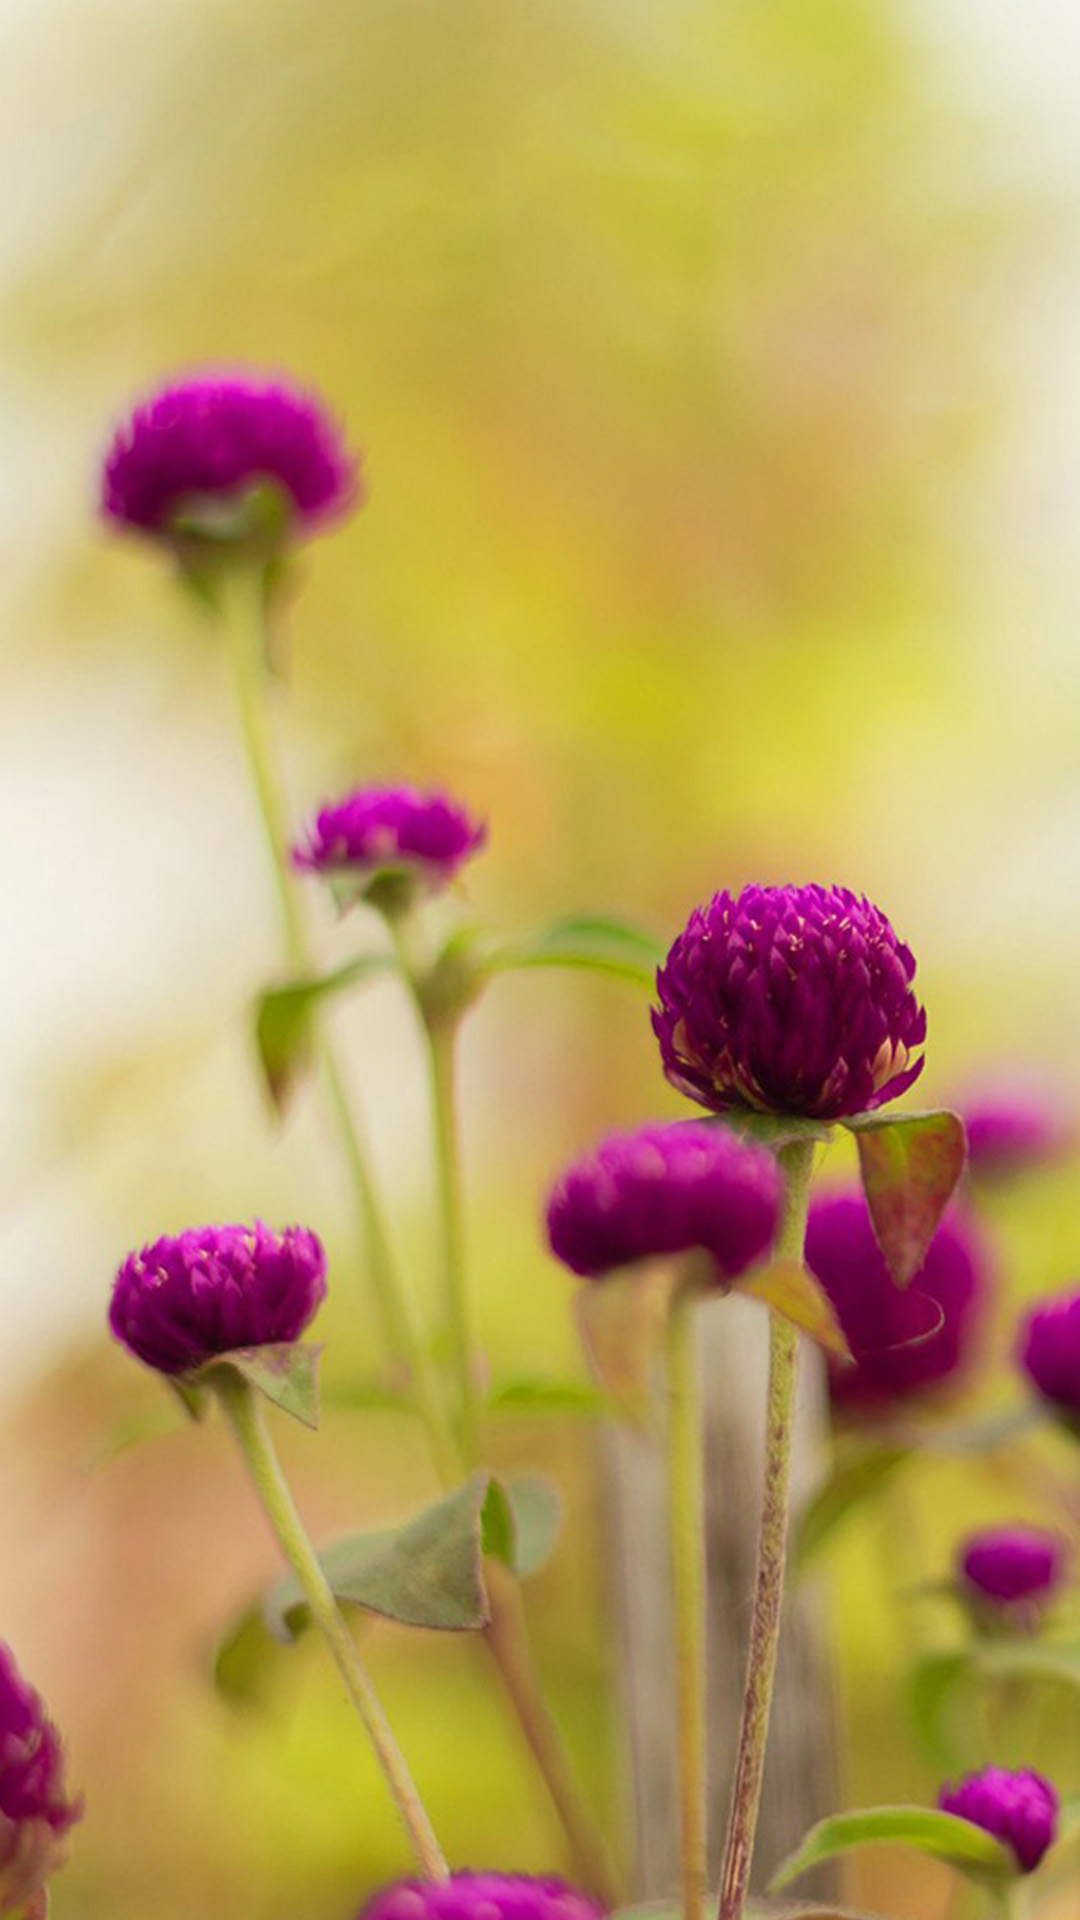 colorful purple flower hd wallpaper iphone 6 plus